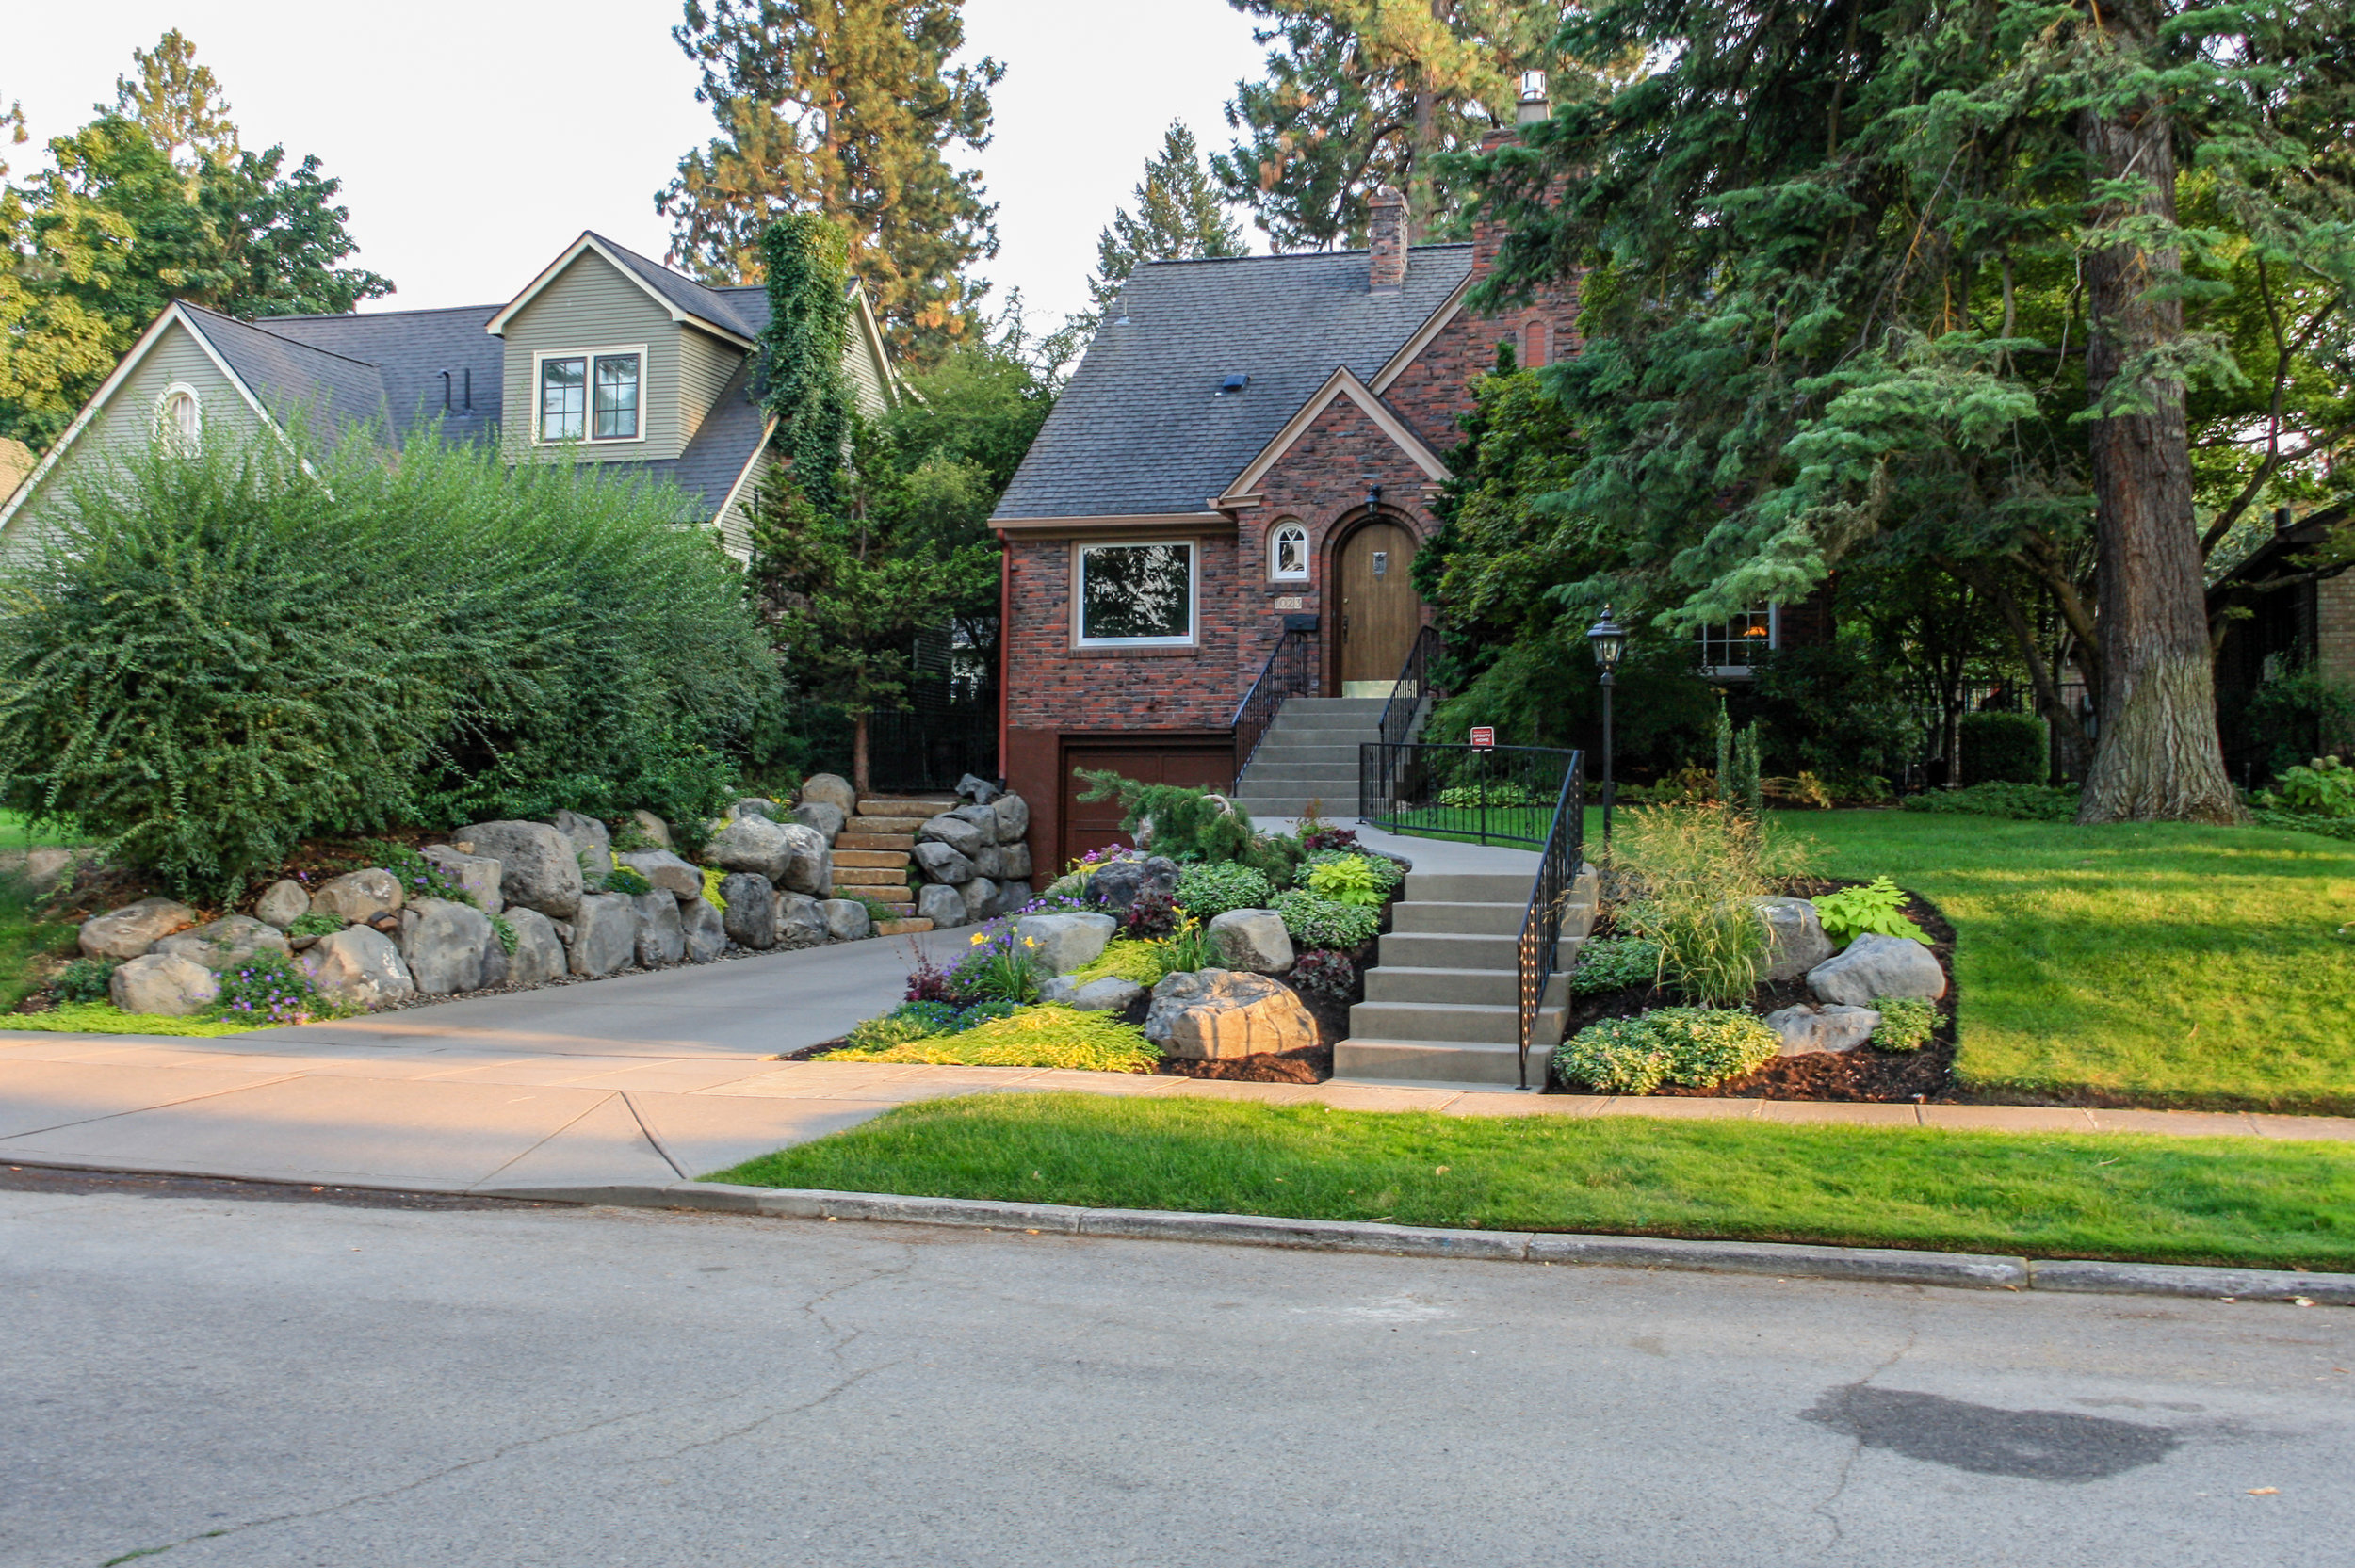 spokane south hill front yard landscaping